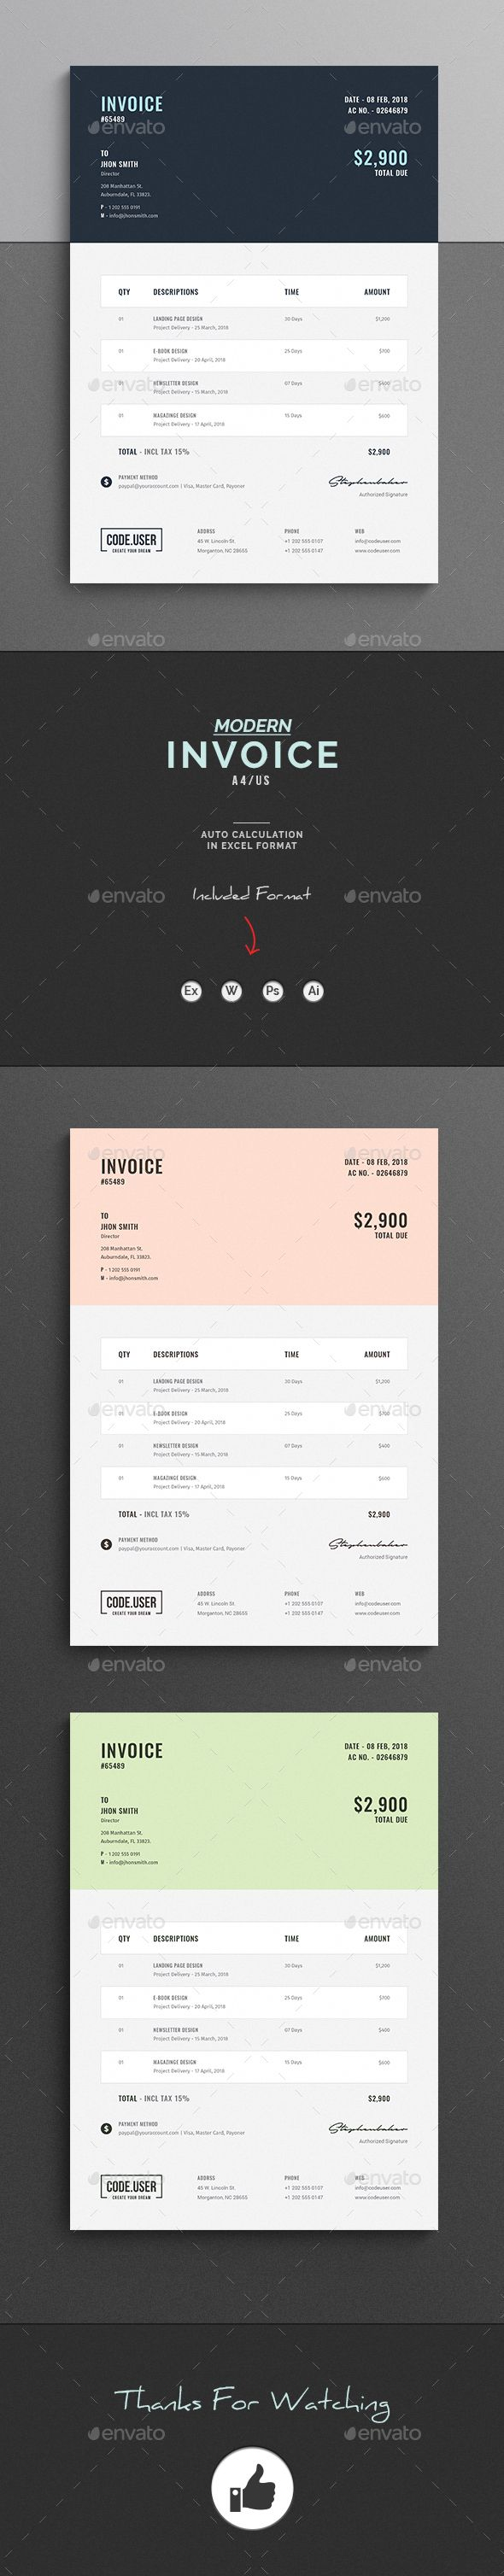 Invoice  Template Brand Identity And Email Marketing Design